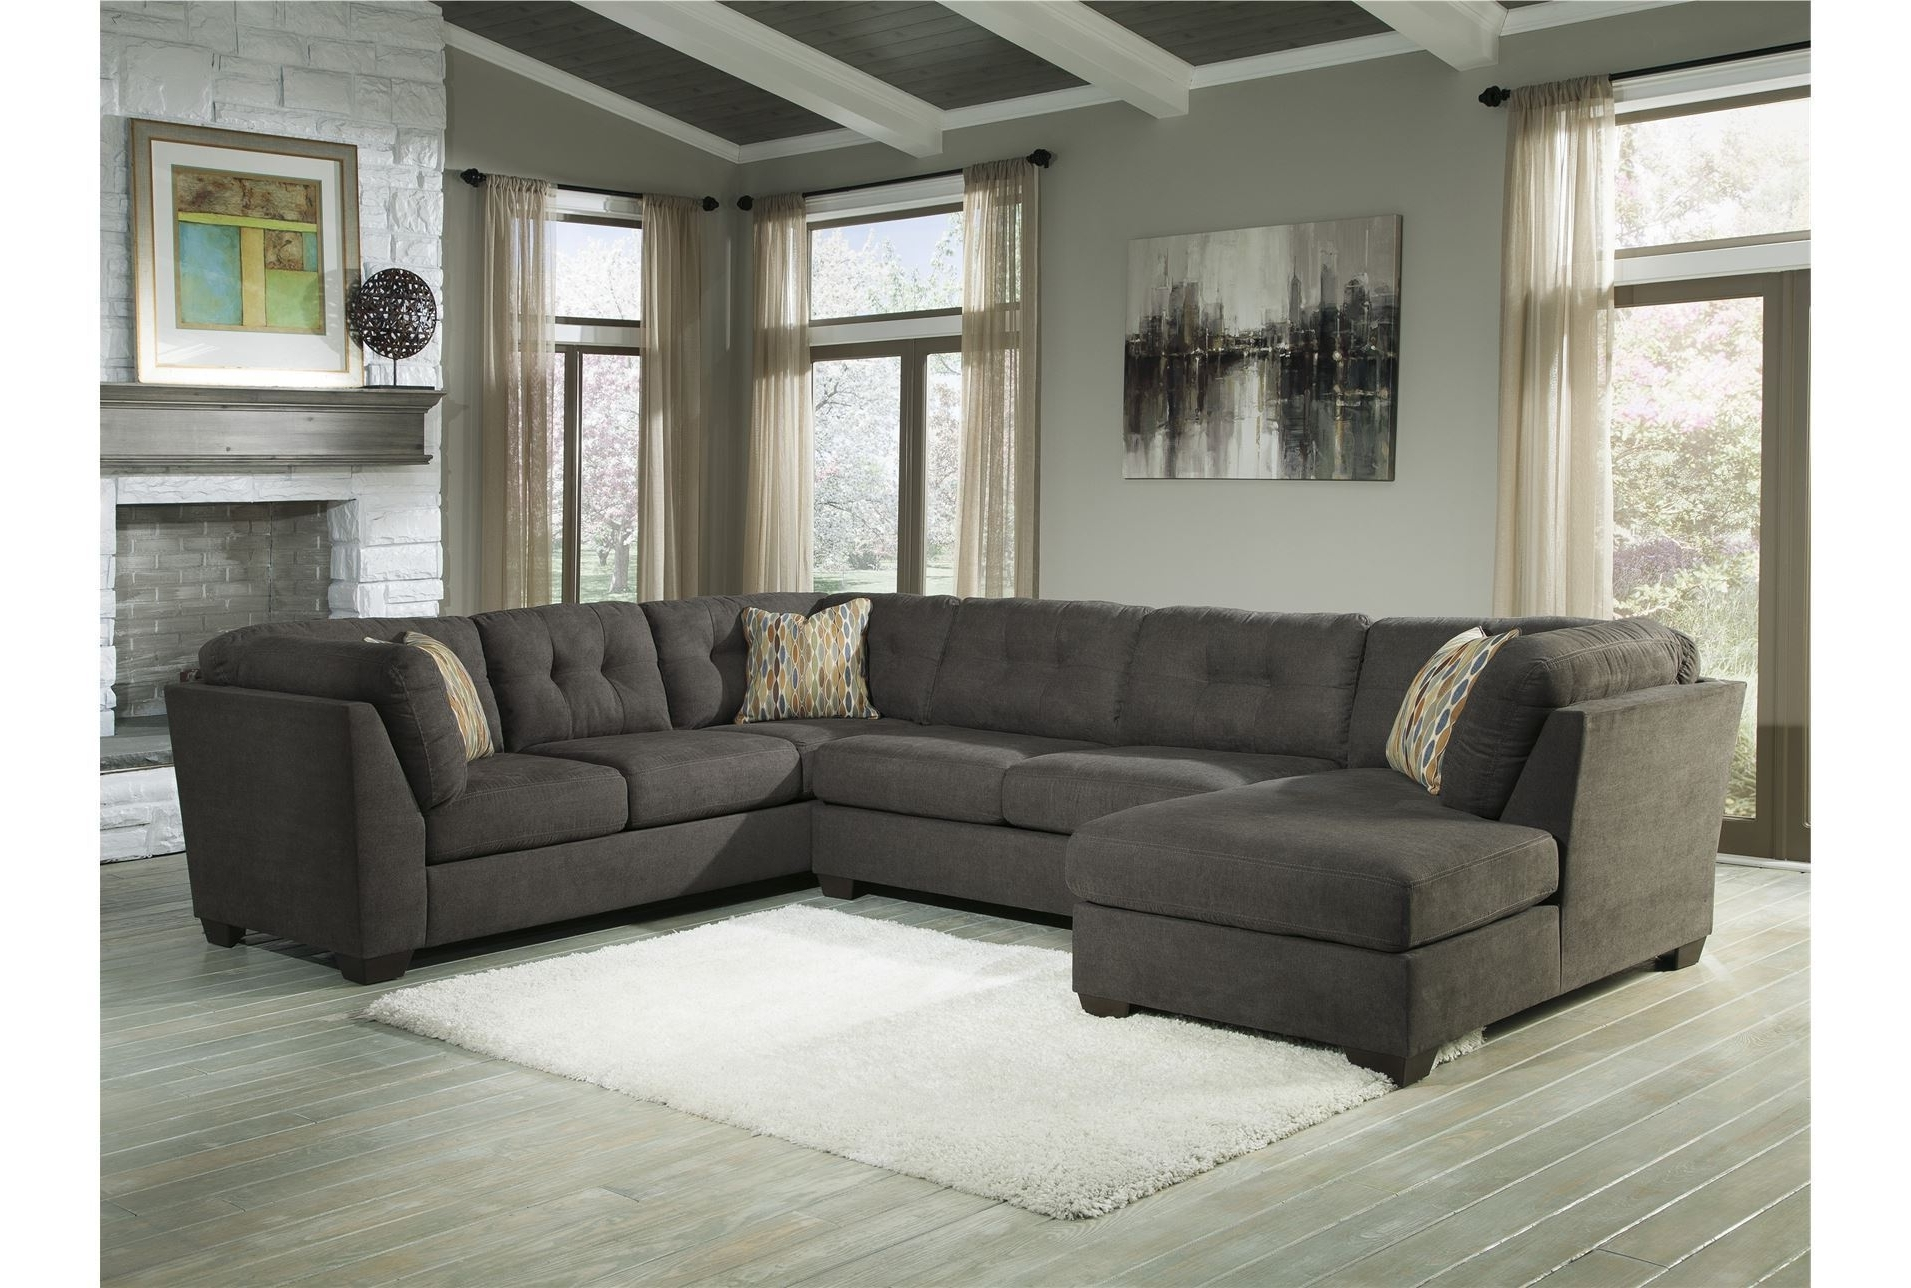 Gray U Shaped Sectionals Intended For Preferred Delta City Steel 3 Piece Sectional W/laf Chaise  Living Room (Gallery 15 of 20)